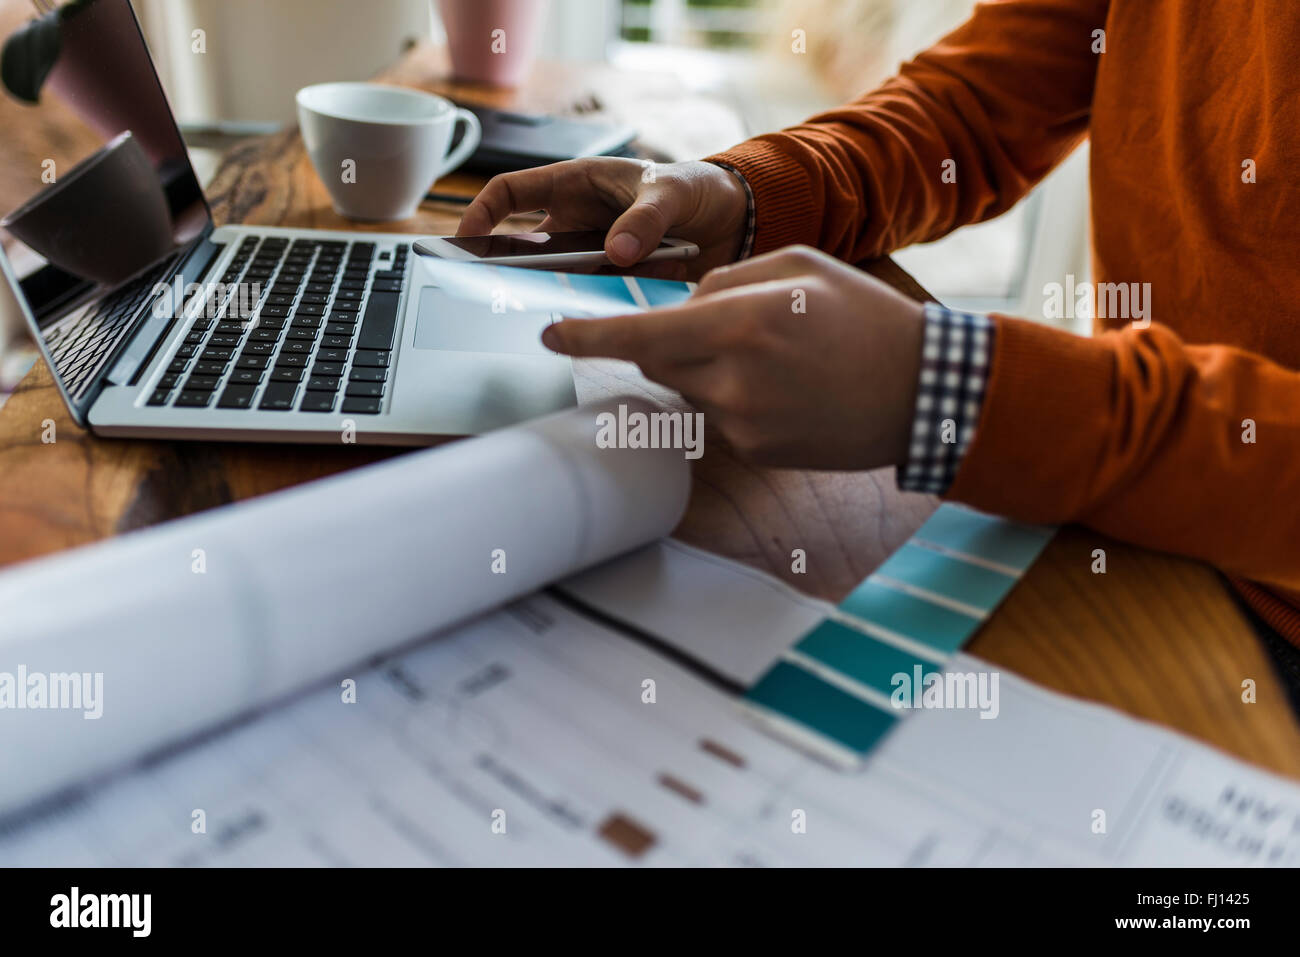 Close-up of man with cell phone, laptop and color samples at desk - Stock Image